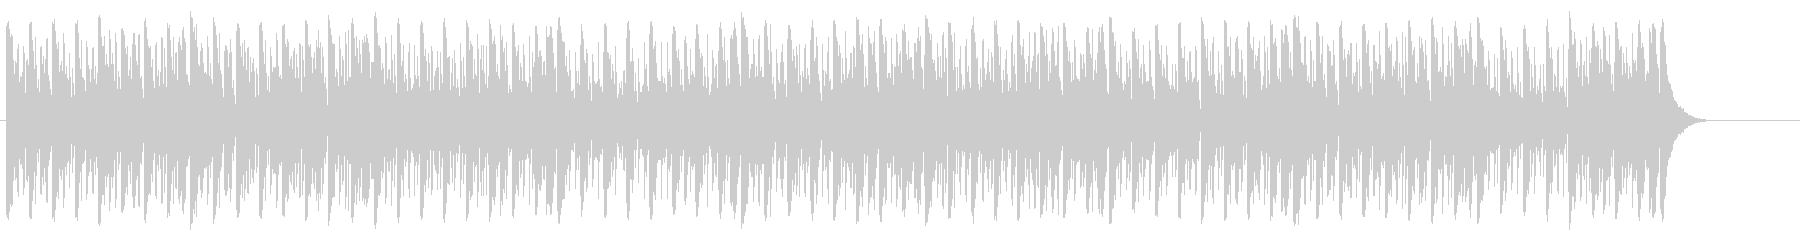 Thailand china asian ethnic tradition's unreproduced waveform